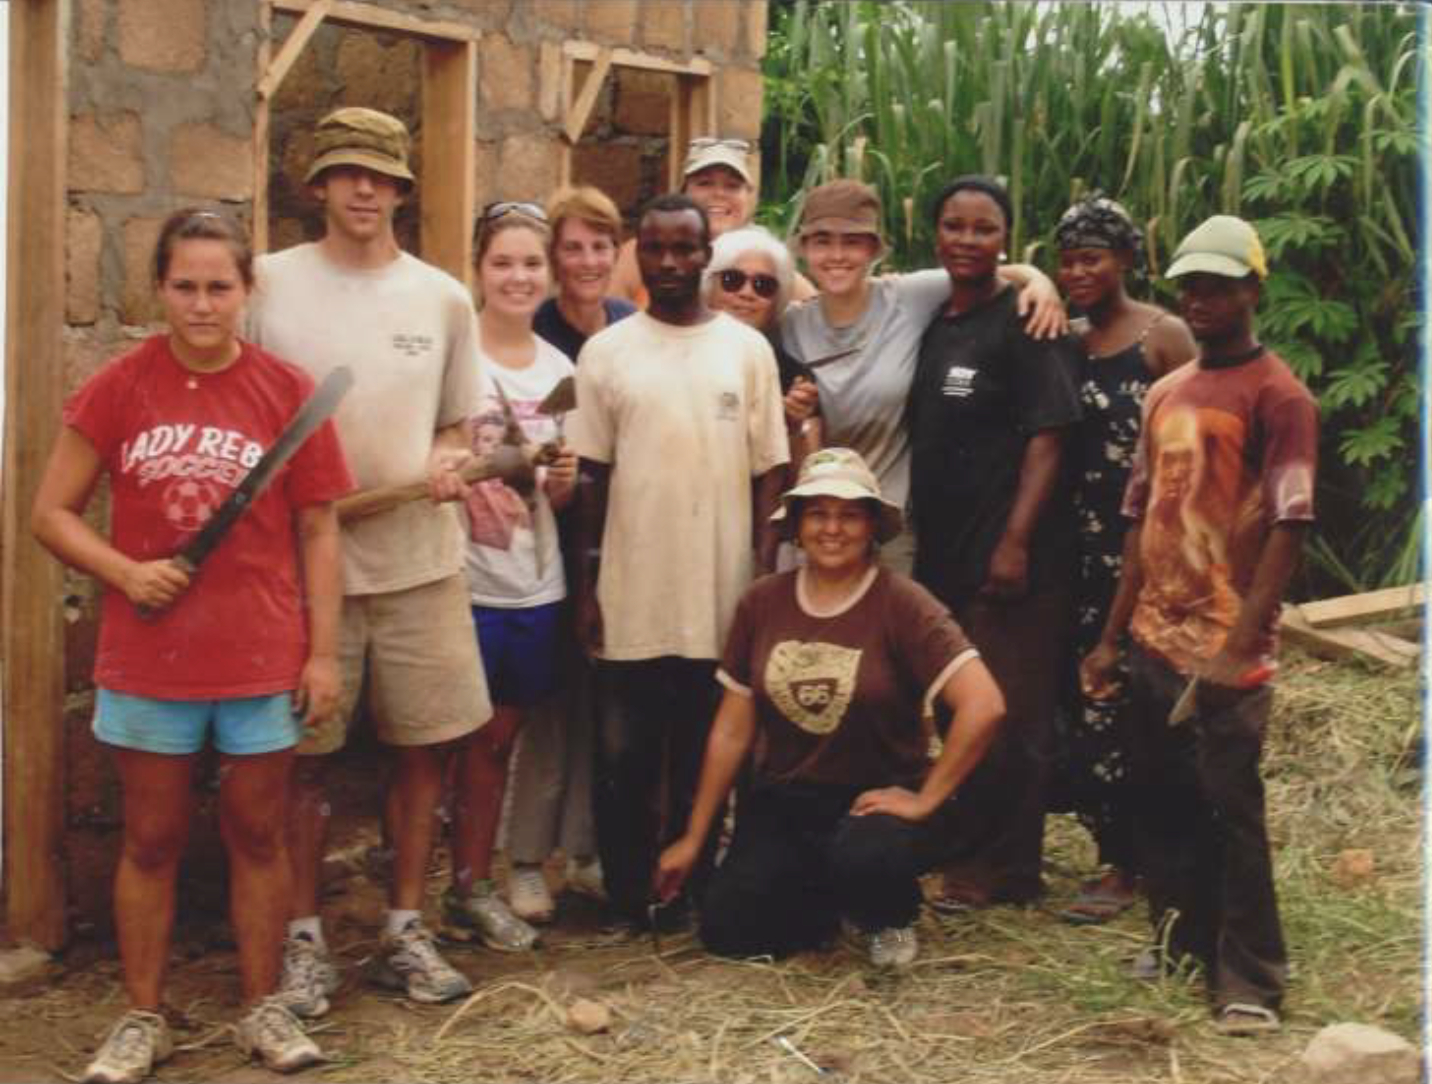 2006 - L to R: Aly Howisey, Paul Graddon, Ashley Zerangue Freni, Jan Kline**, Jen Mullis, Teddi Alejandrino, Karla GergenBottom: Teri Cella